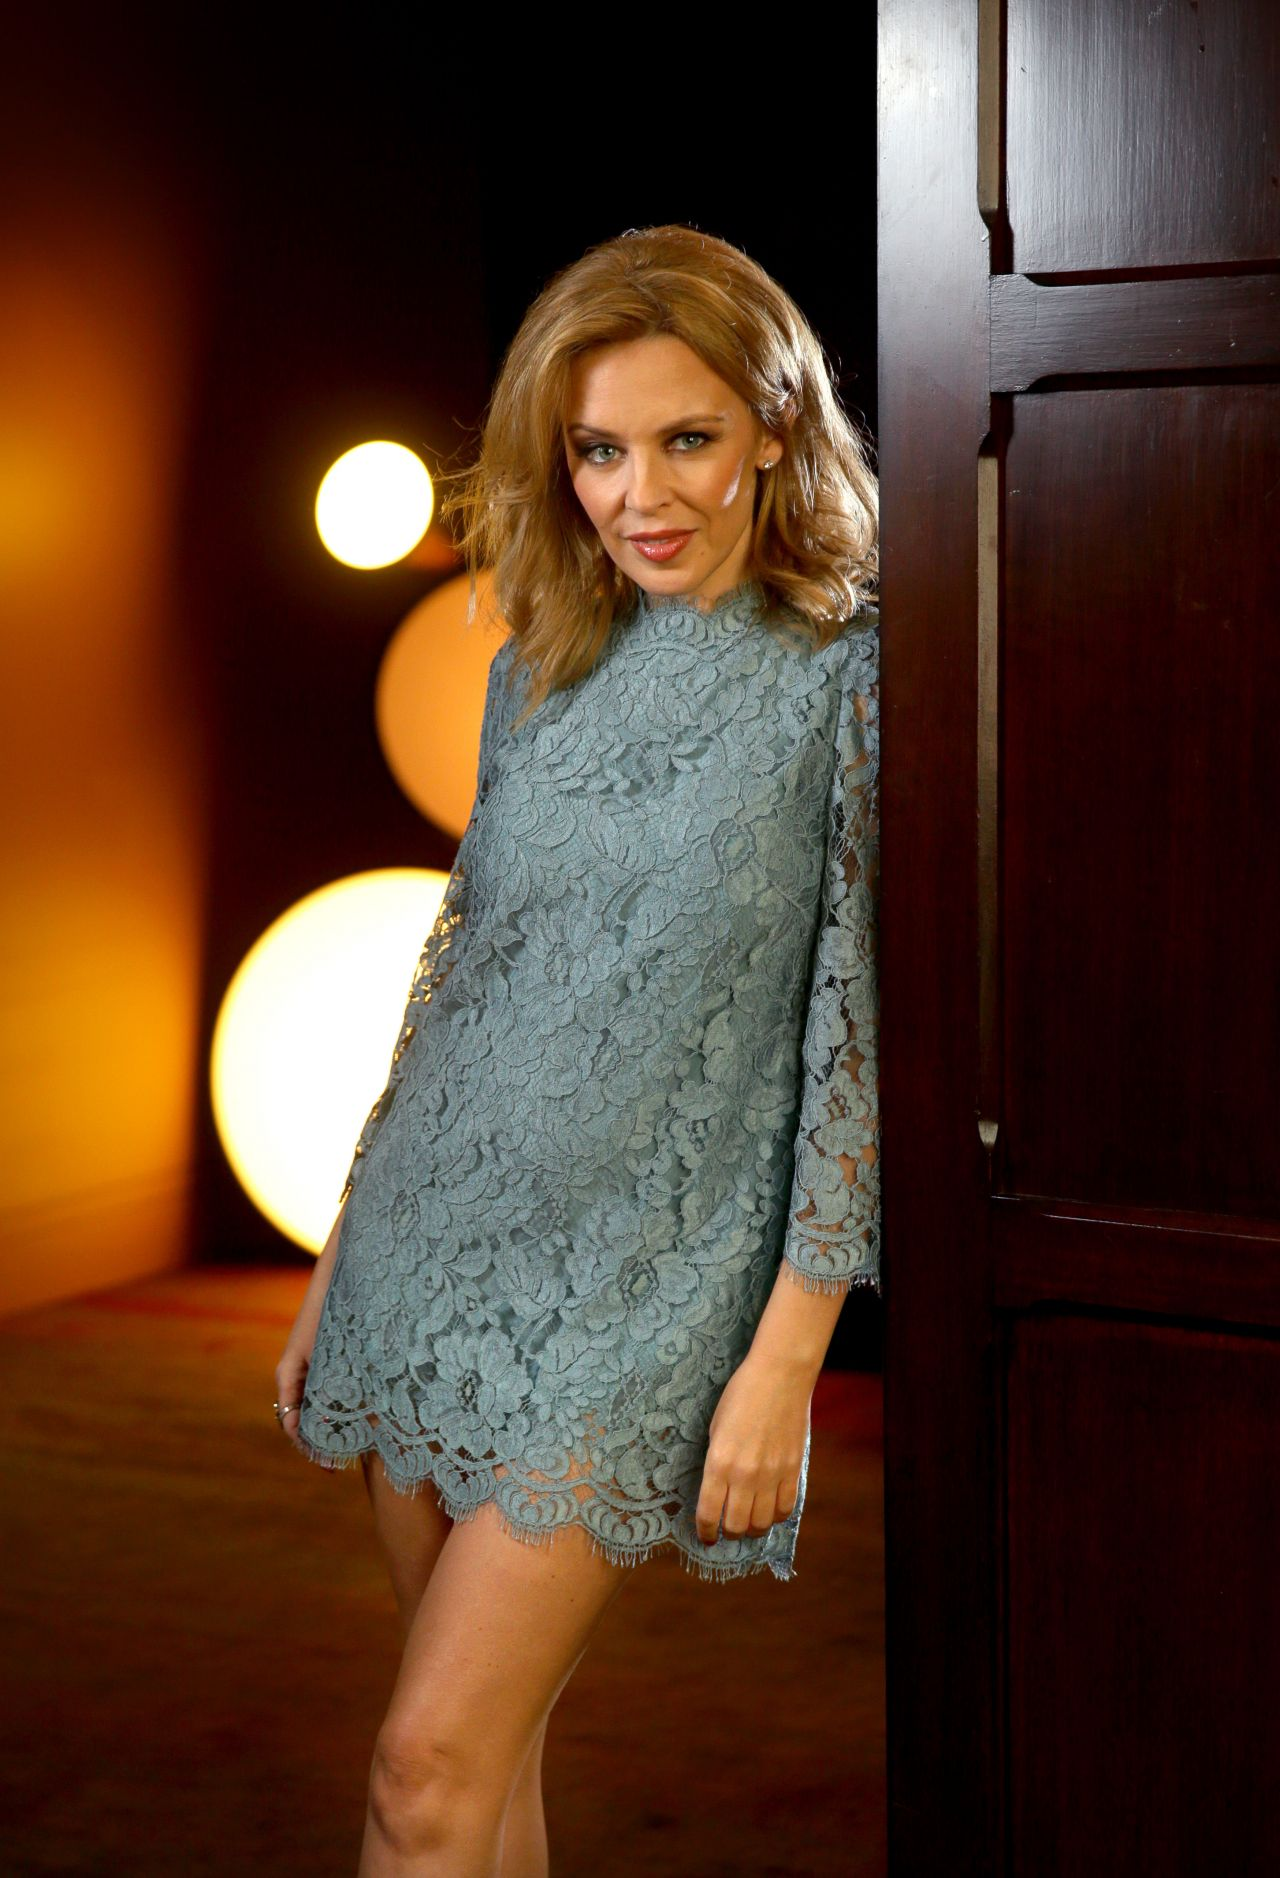 Kylie Minogue Seduces in New Photoshoot at the QT Hotel Sydney